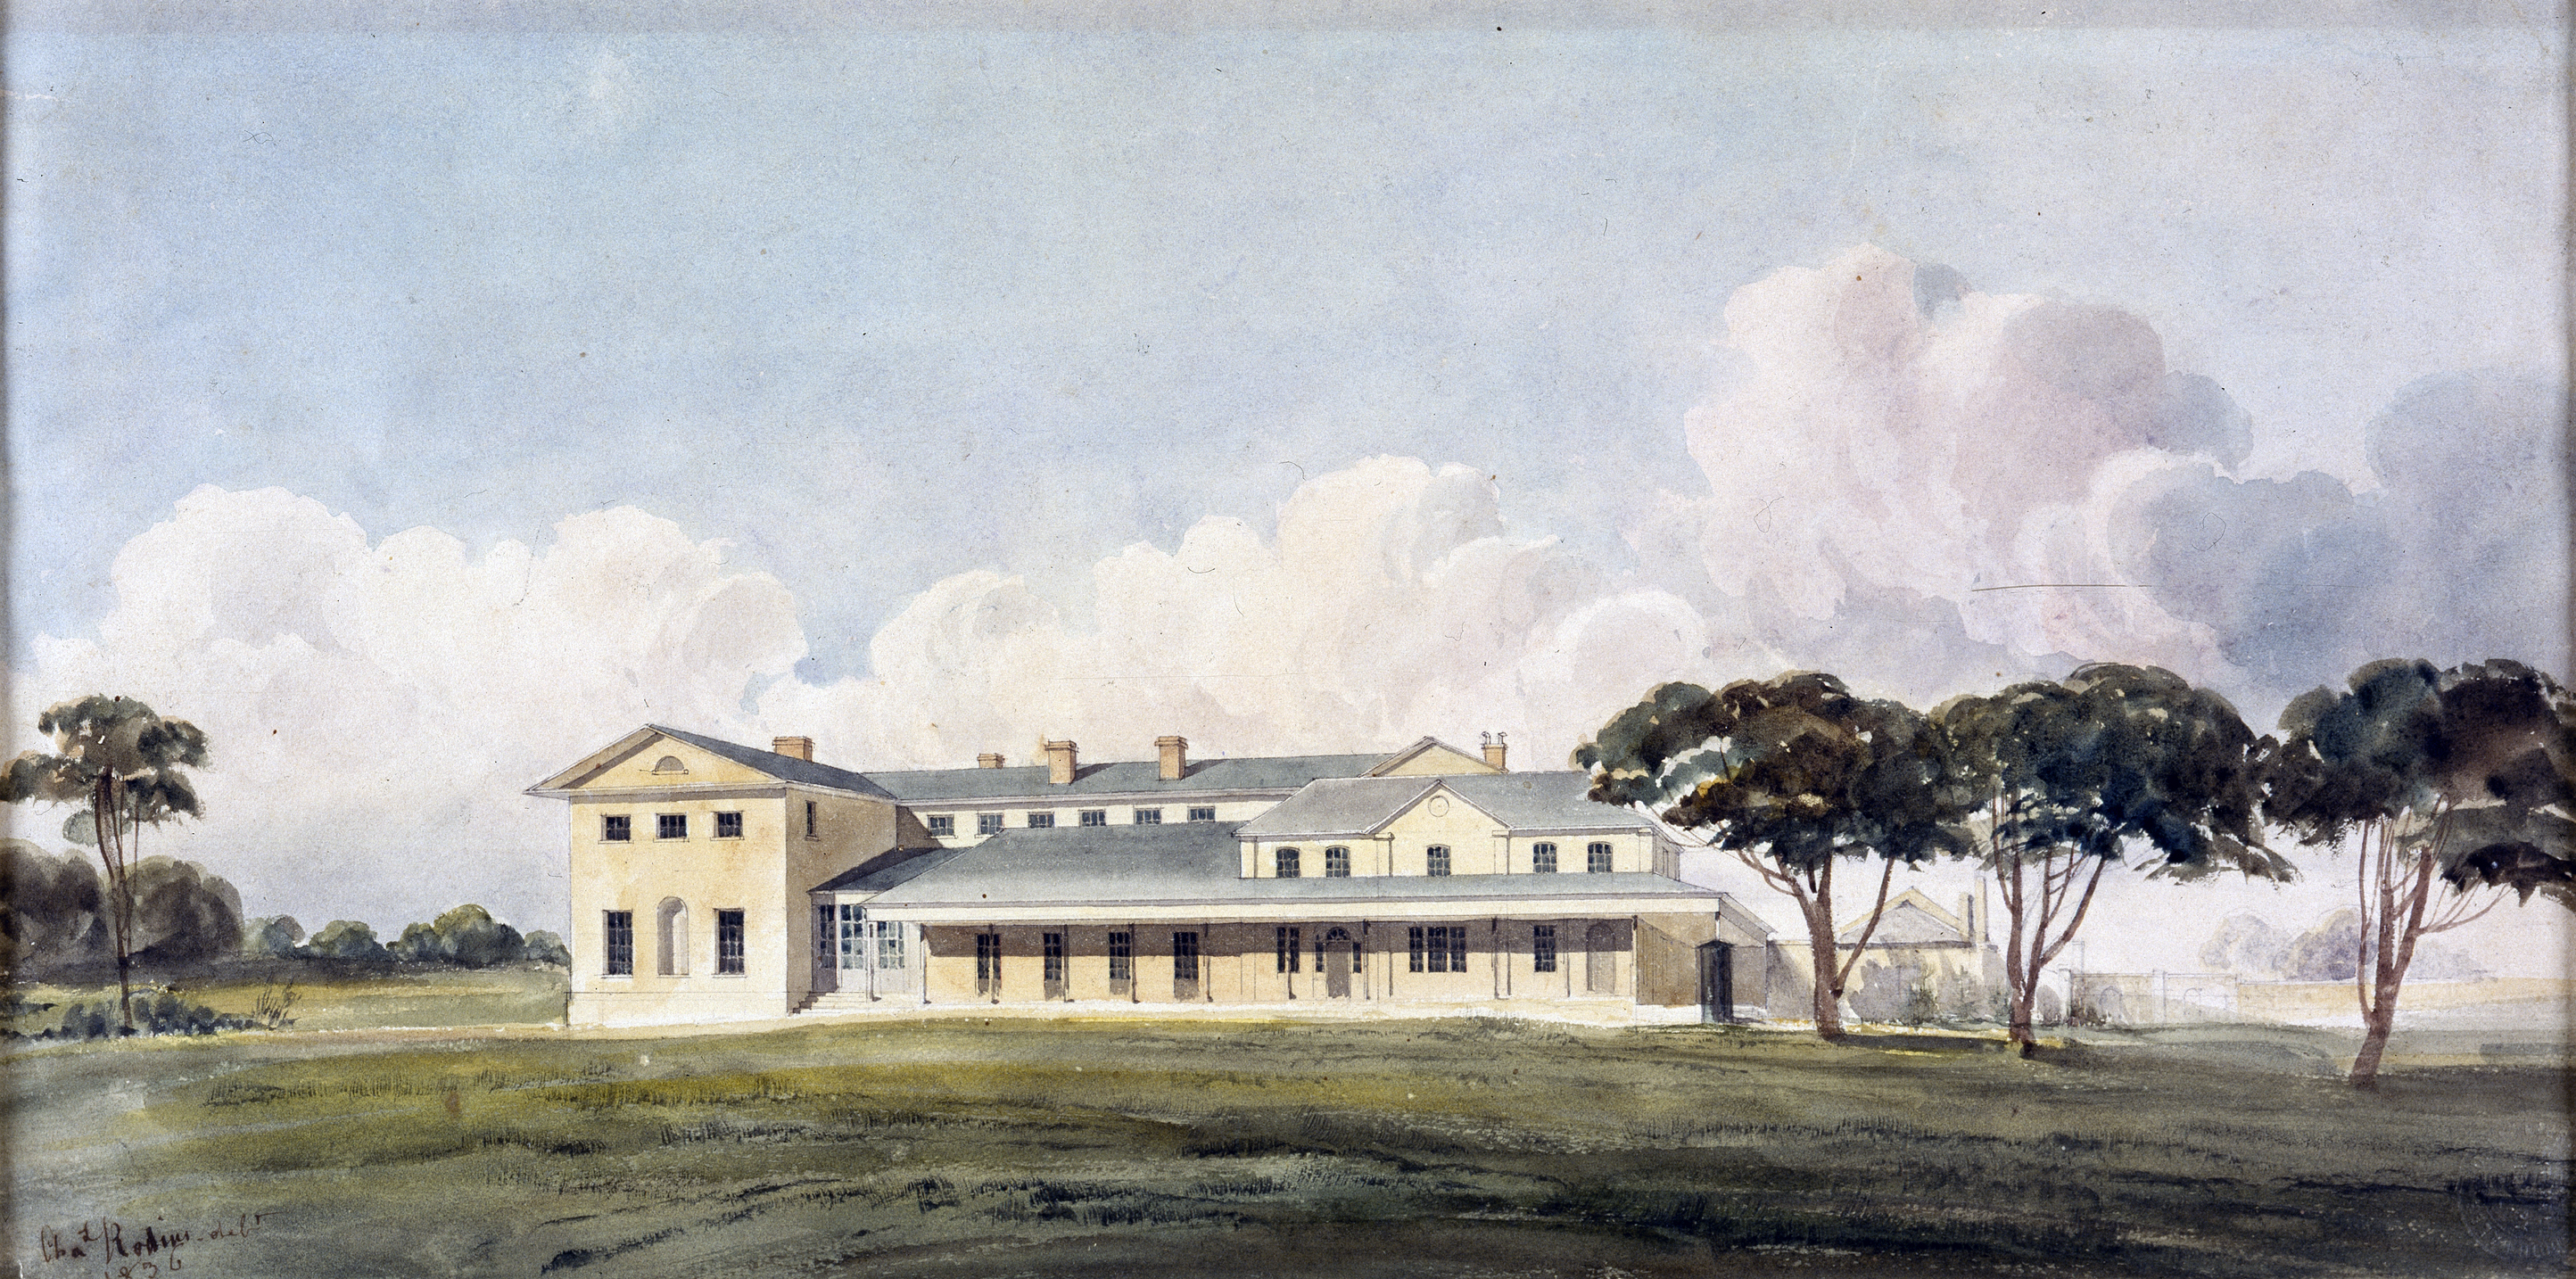 Watercolour of colonial era building in landscape.